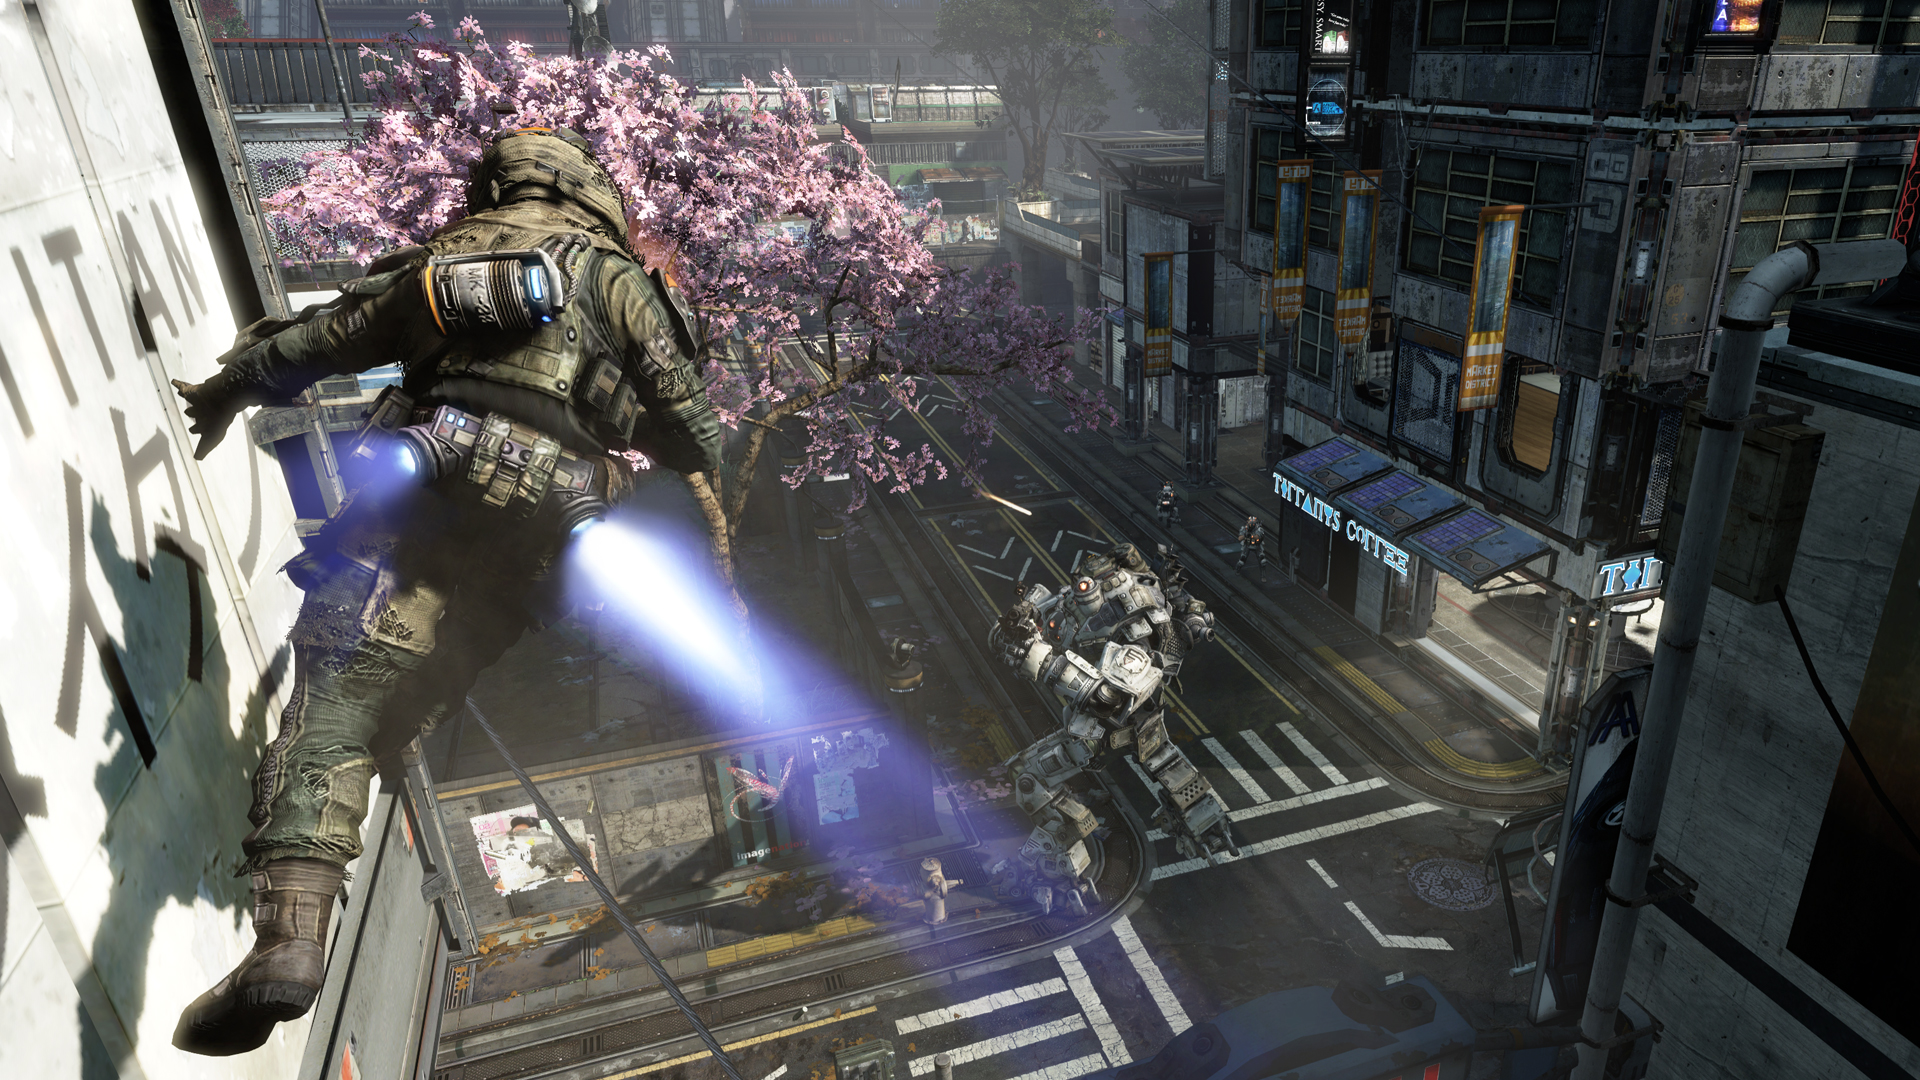 A soldier runs on a wall in a 1-on-1 battle with a mech unit.